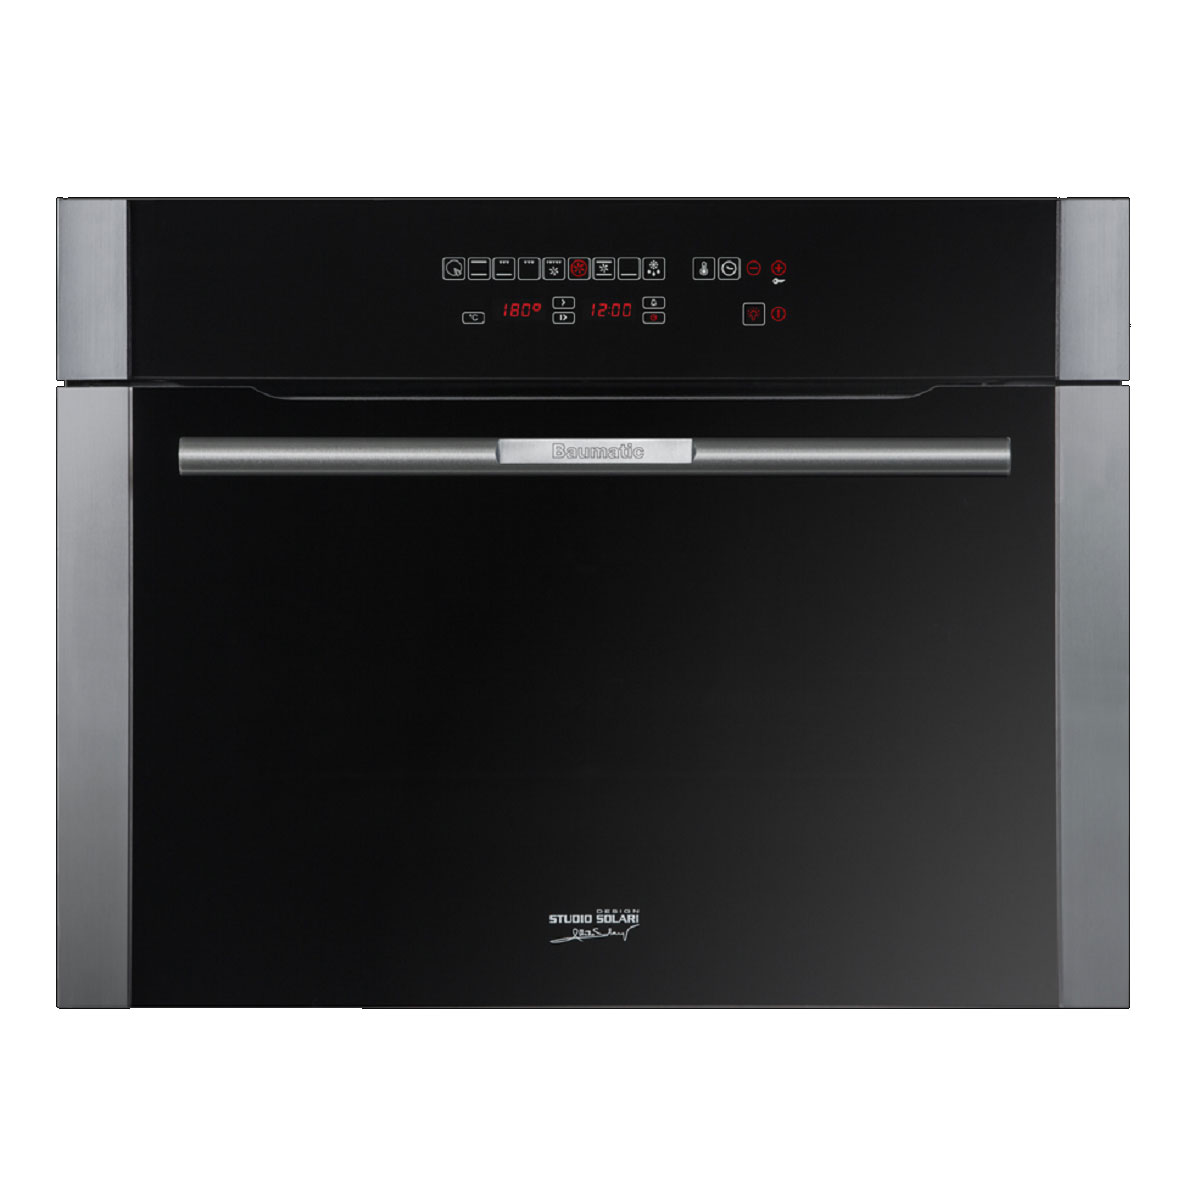 Baumatic BSO45 600mm Compact Multifunction Oven